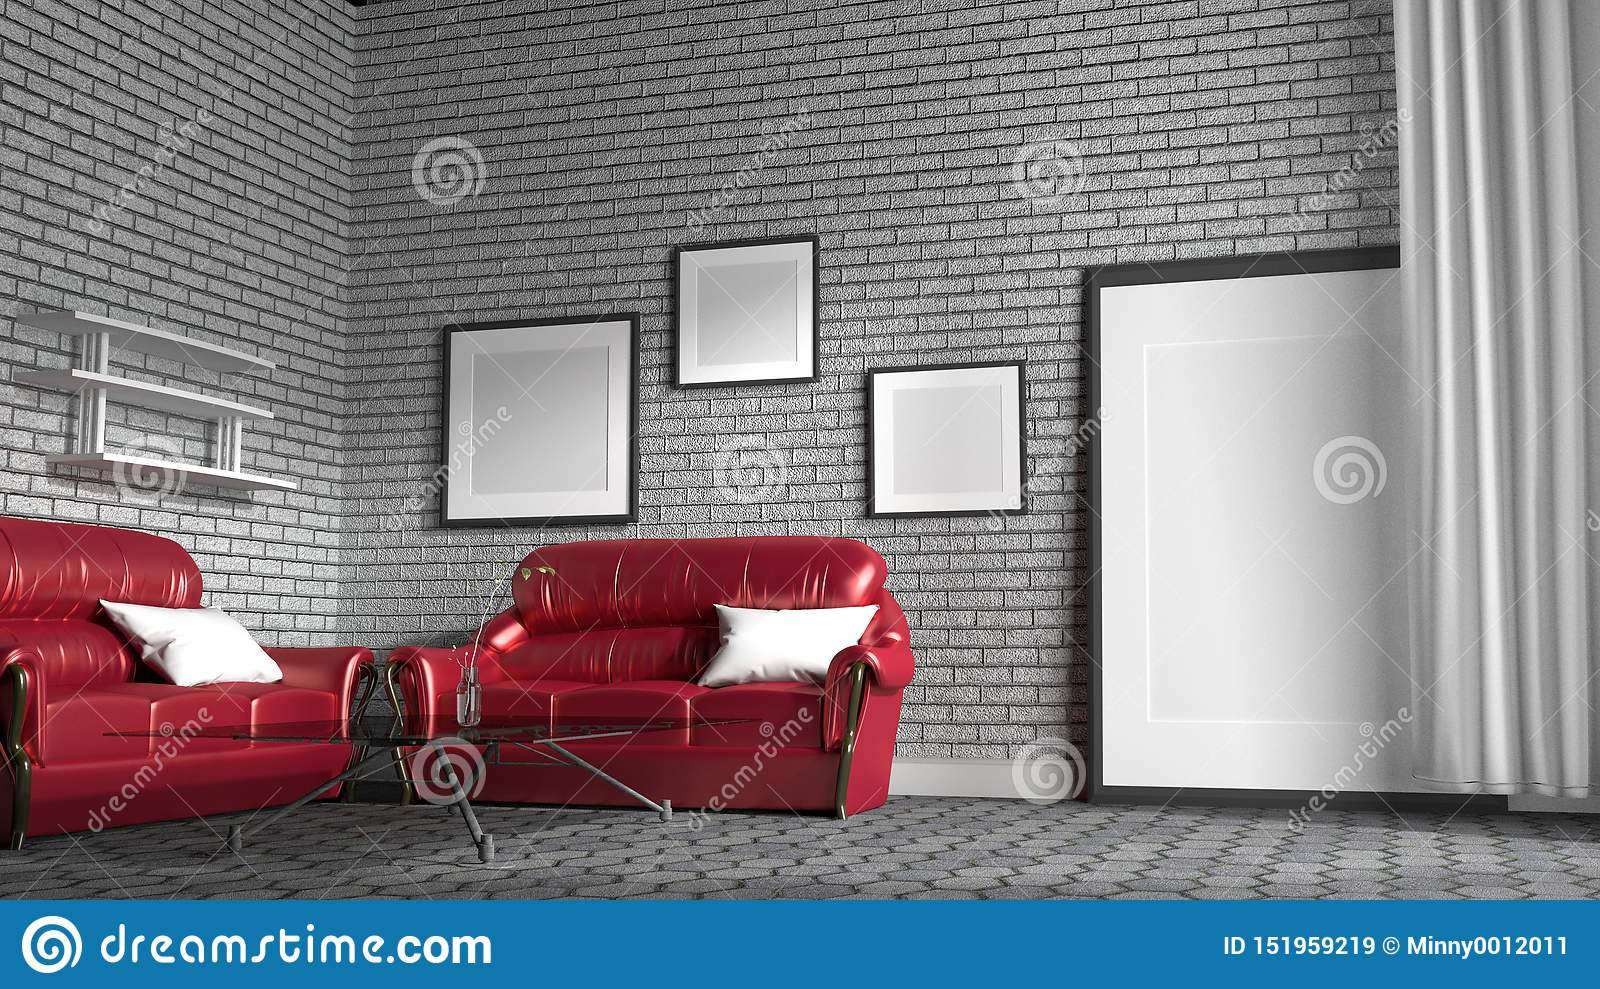 Red Sofa In A Living Room With White Brick Wall Background 3d Rendering Stock Illustration Illustration Of Architecture Living 151959219